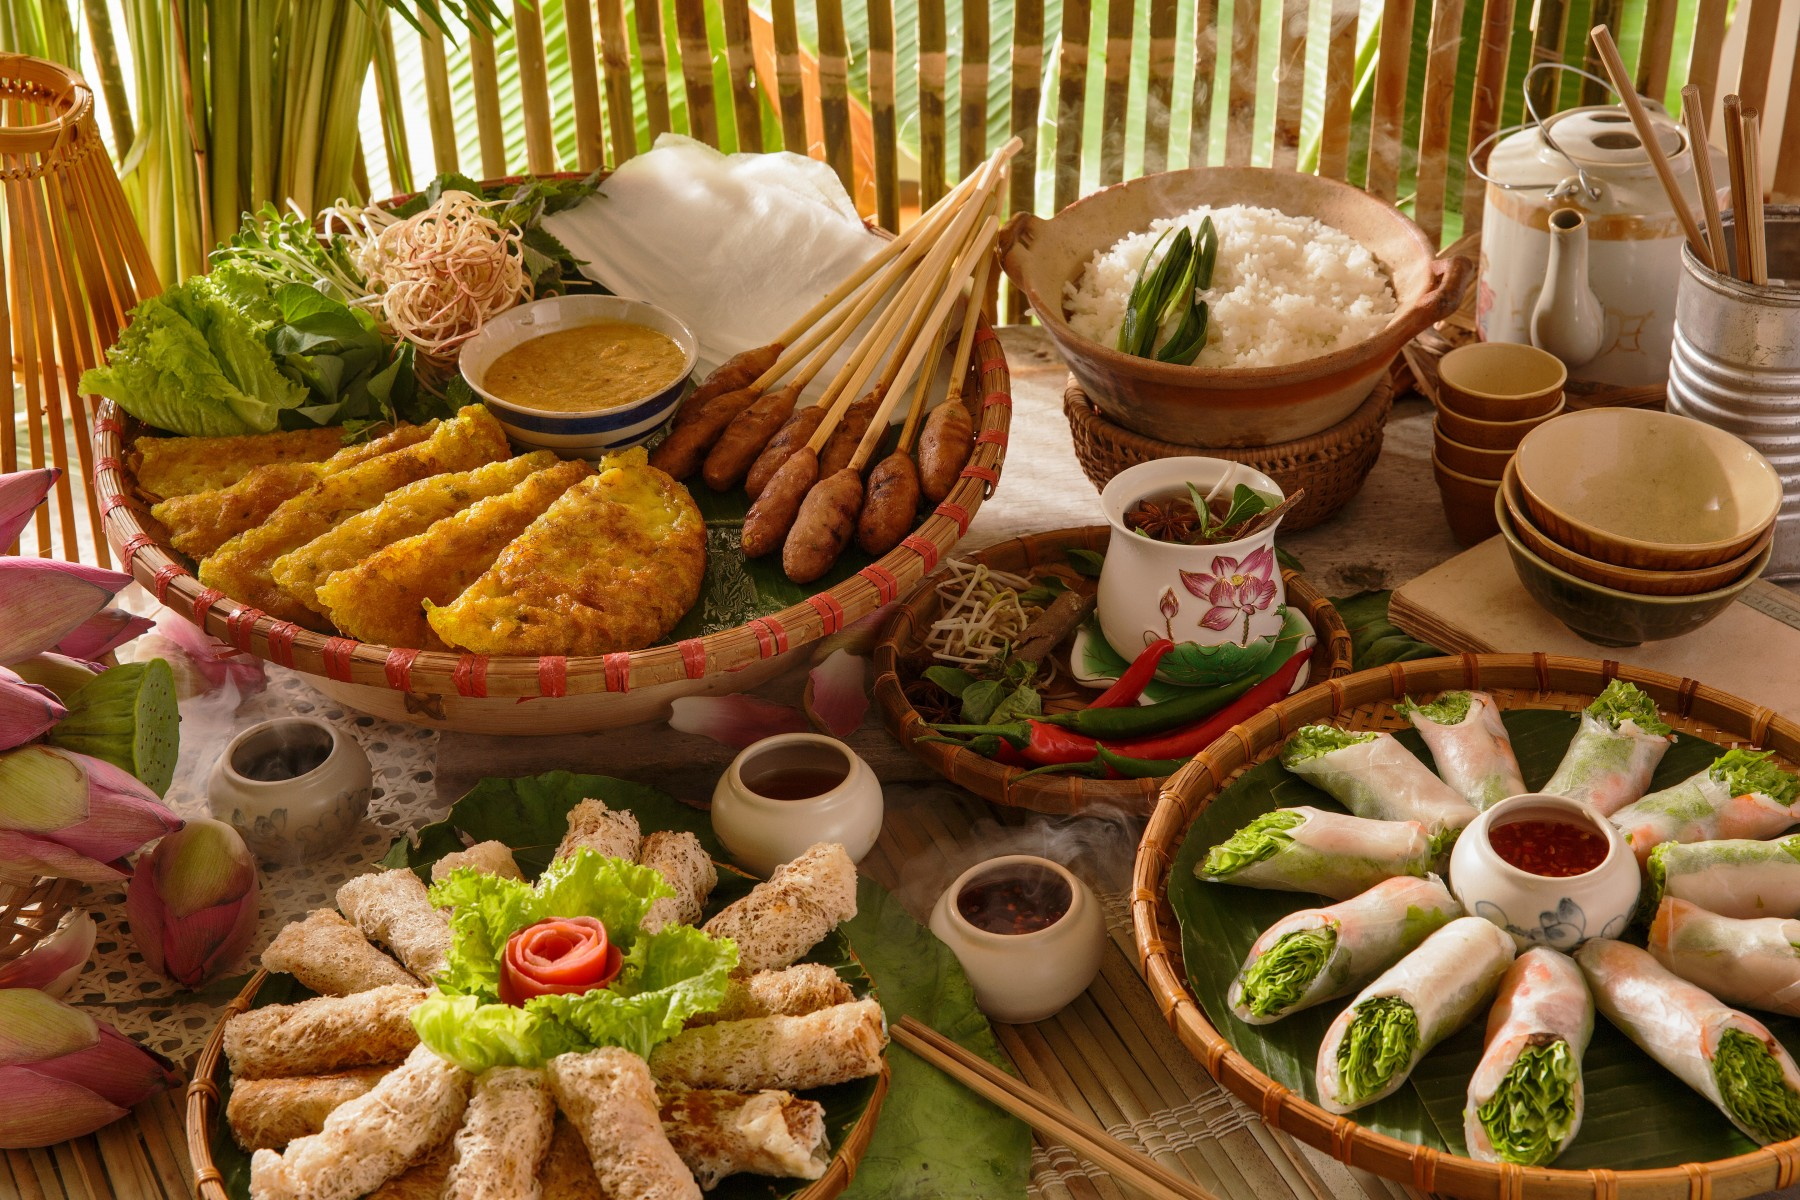 vietnamese-traditional-food-photo-special-event-bubbles-beats-brunch-pullman-danang-beach-resort-banh-xeo-pancake-lotus-rice-tea-nem-lui-tea-element-